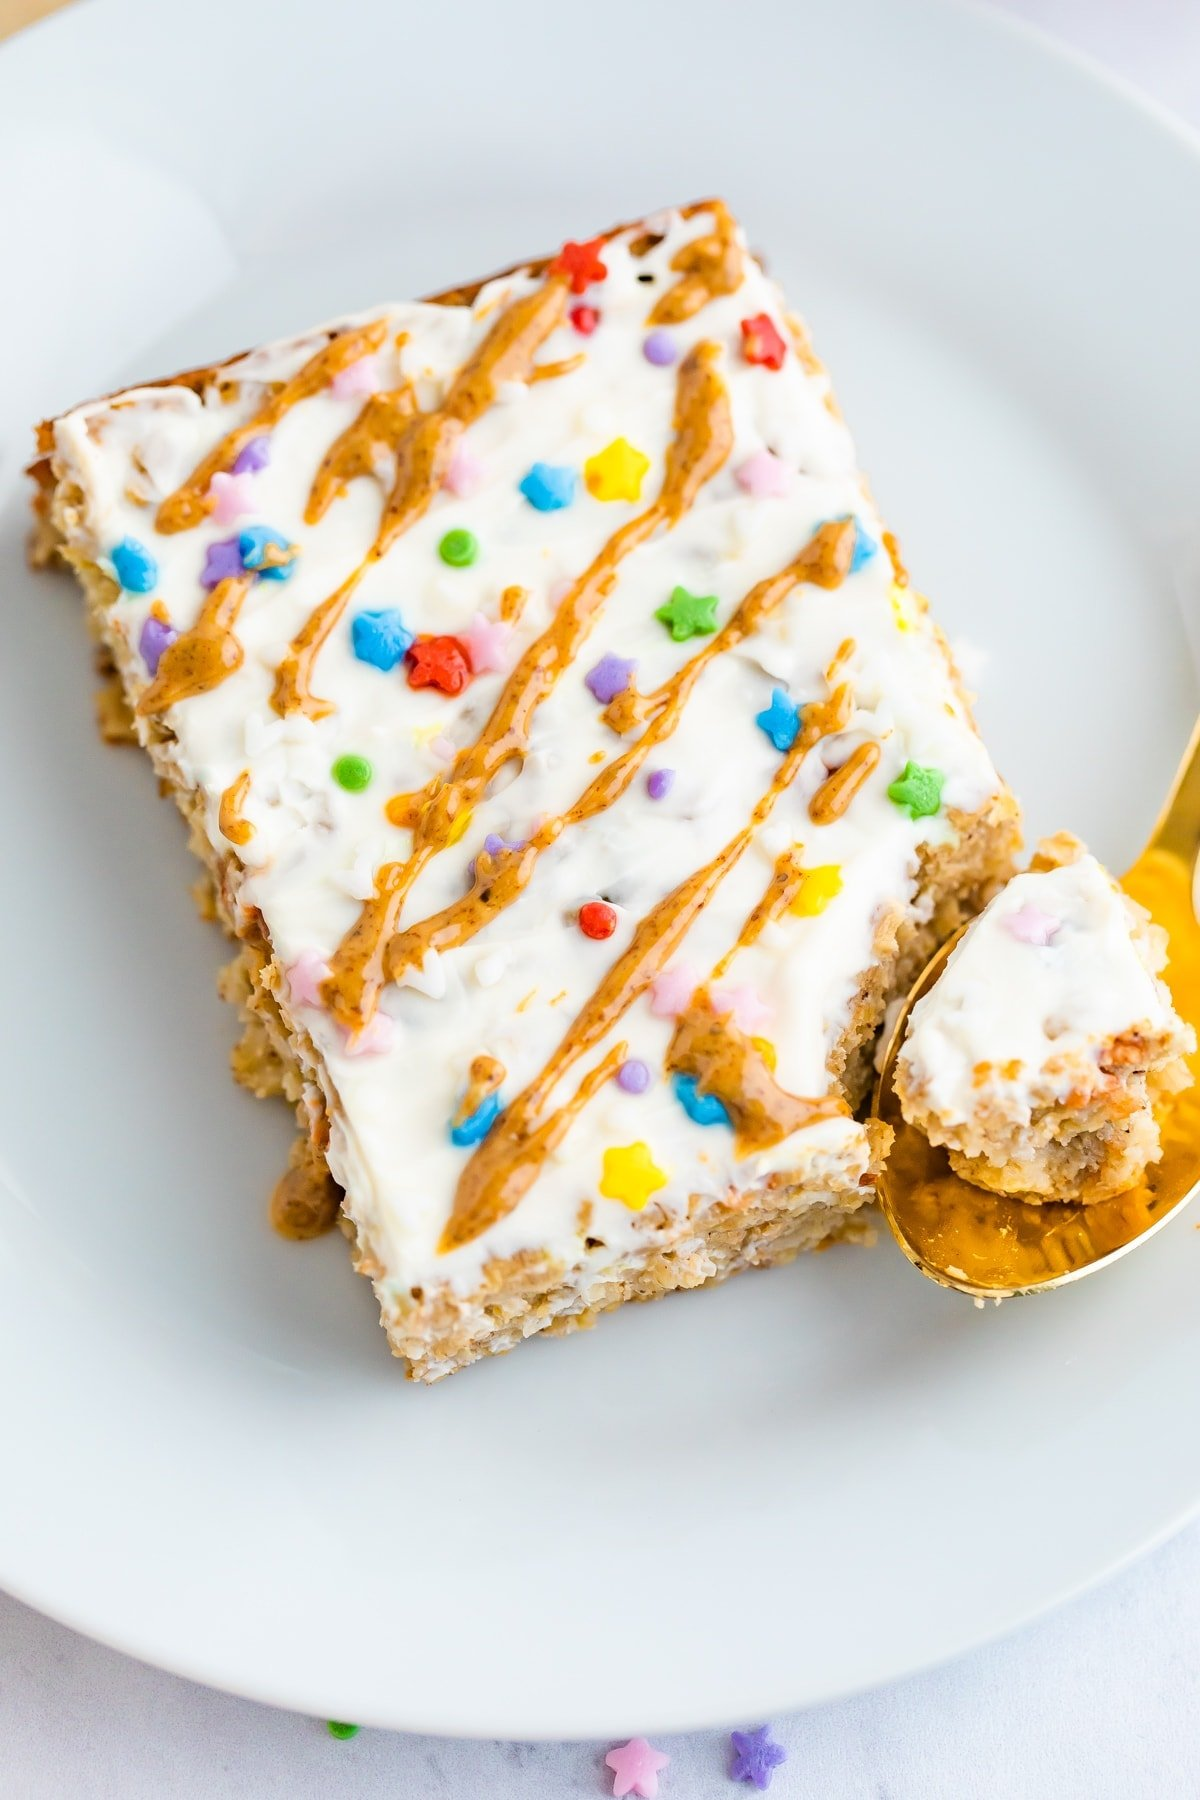 Slice of birthday cake baked oatmeal topped with frosting, nut butter drizzle and sprinkles. A spoon has taken a bite out of it.